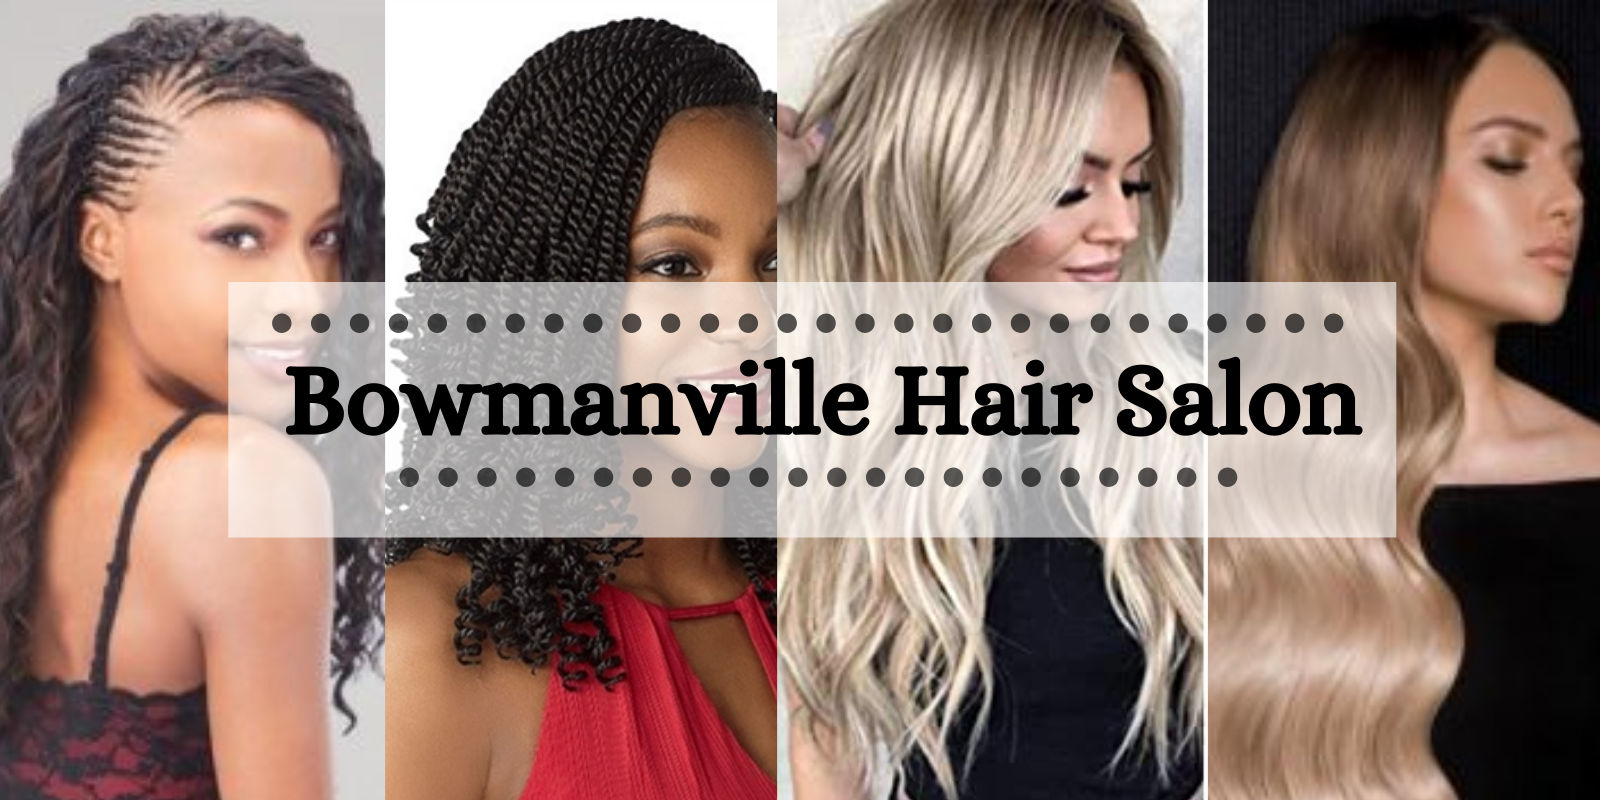 Bowmanville Hair Salon